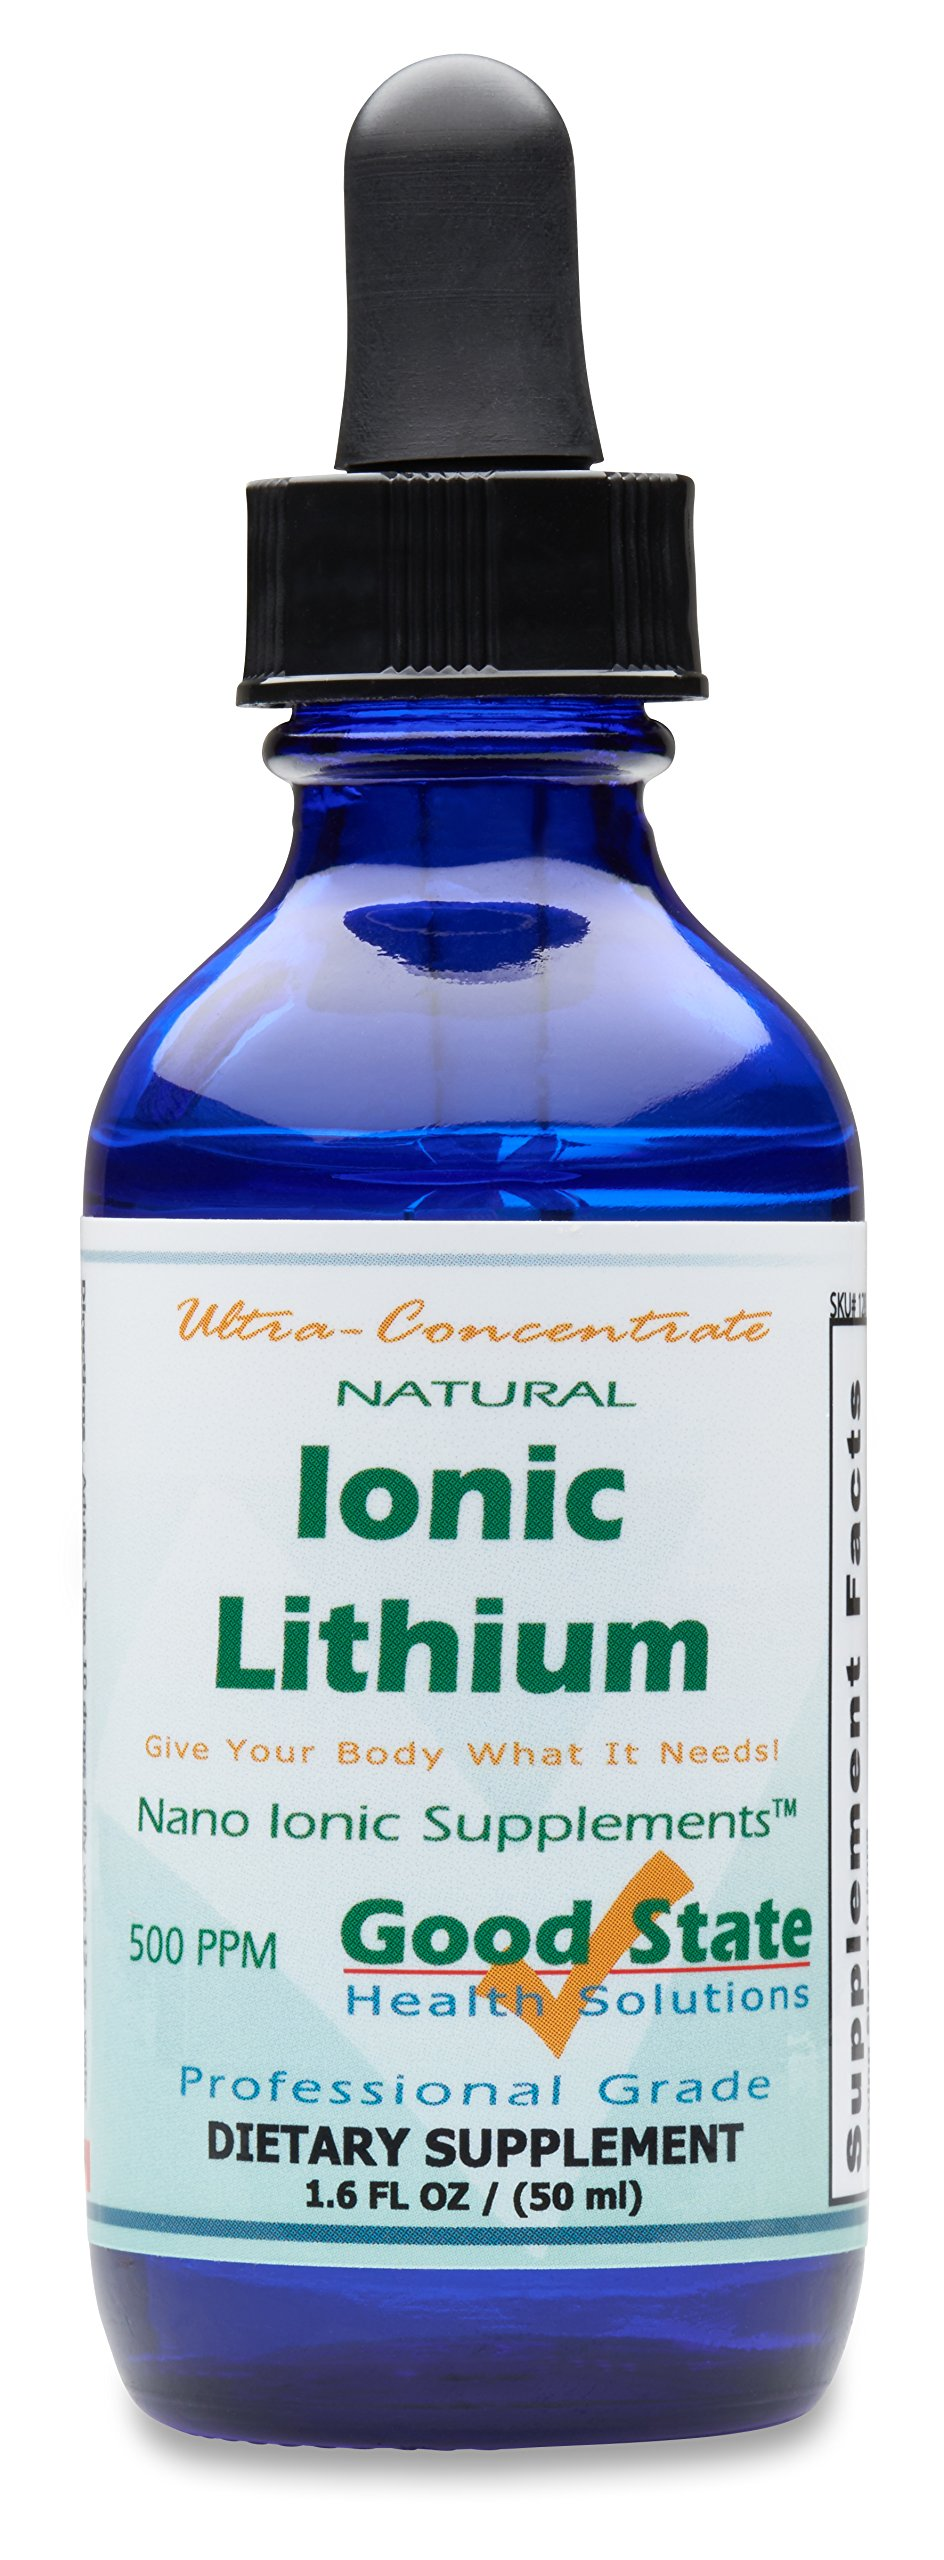 (Glass Bottle) Good State Liquid Ionic Lithium Ultra Concentrate (10 drops equals 500 mcg - 100 servings per bottle)